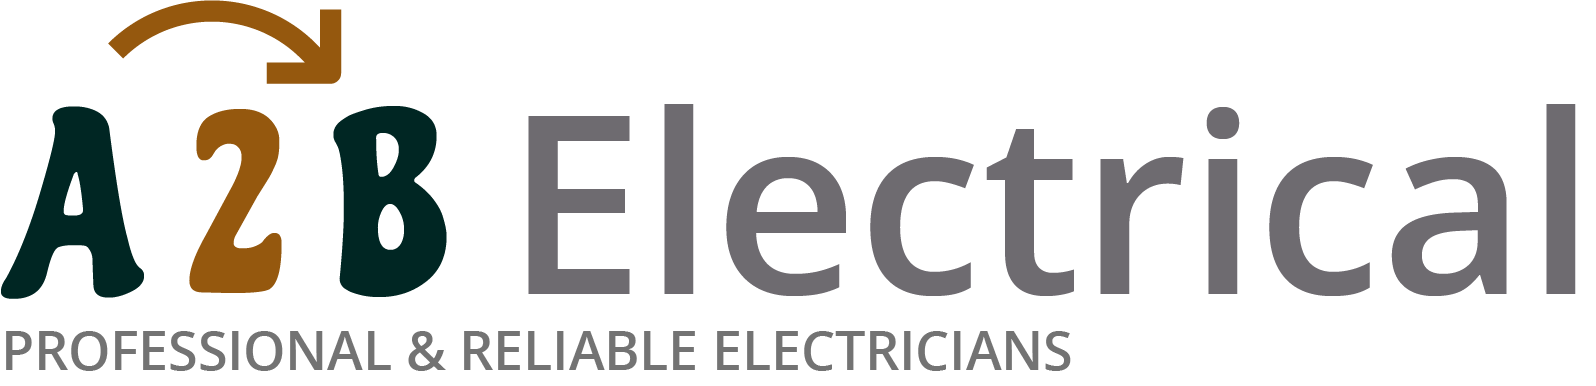 If you have electrical wiring problems in Gospel Oak, we can provide an electrician to have a look for you.